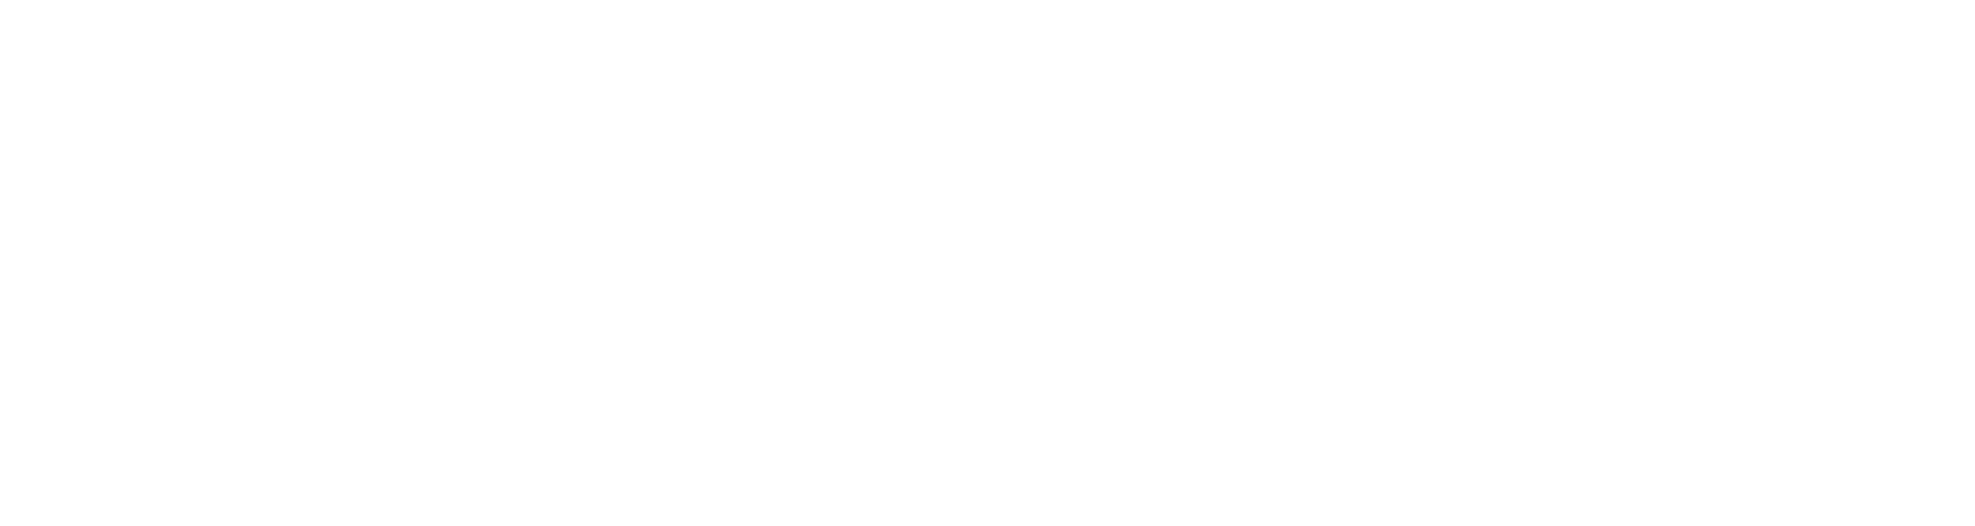 Office of the Vice President for Research